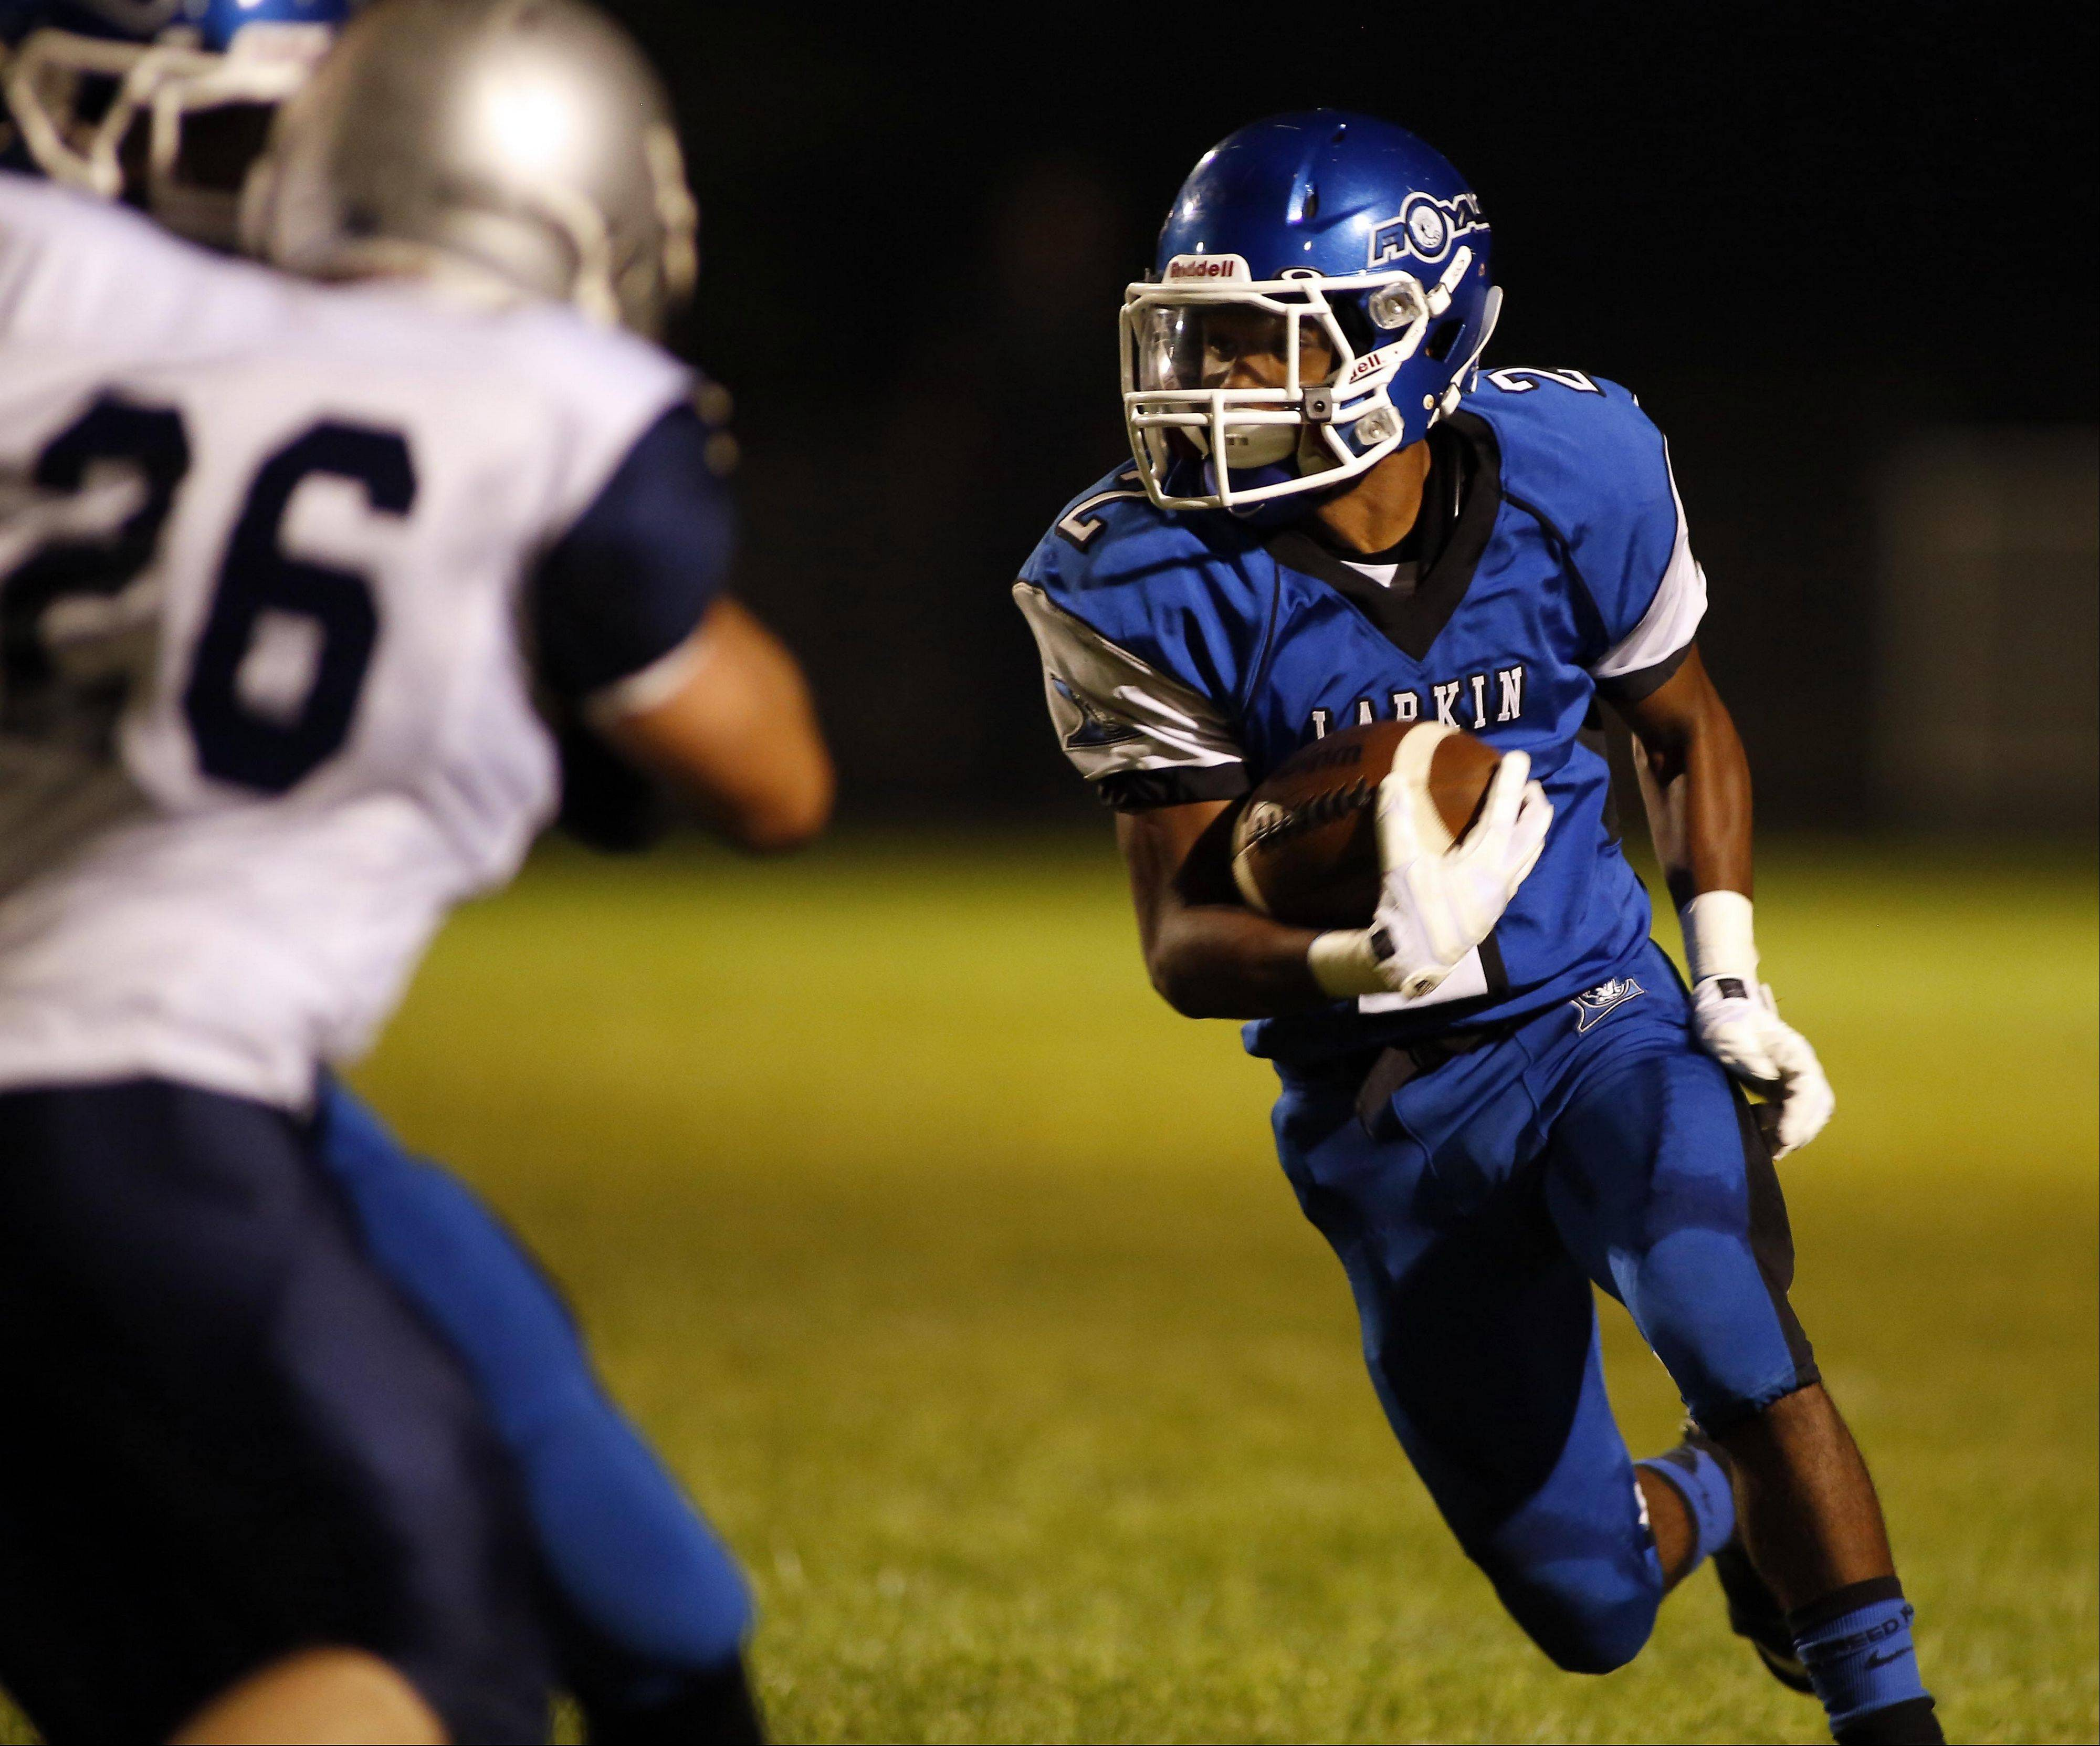 Larkin�s Damion Clemons looks to gain yardage Friday night against West Chicago at Memorial Field. Clemons� 2-yard run in overtime lifted the Royals to a 20-12 win.